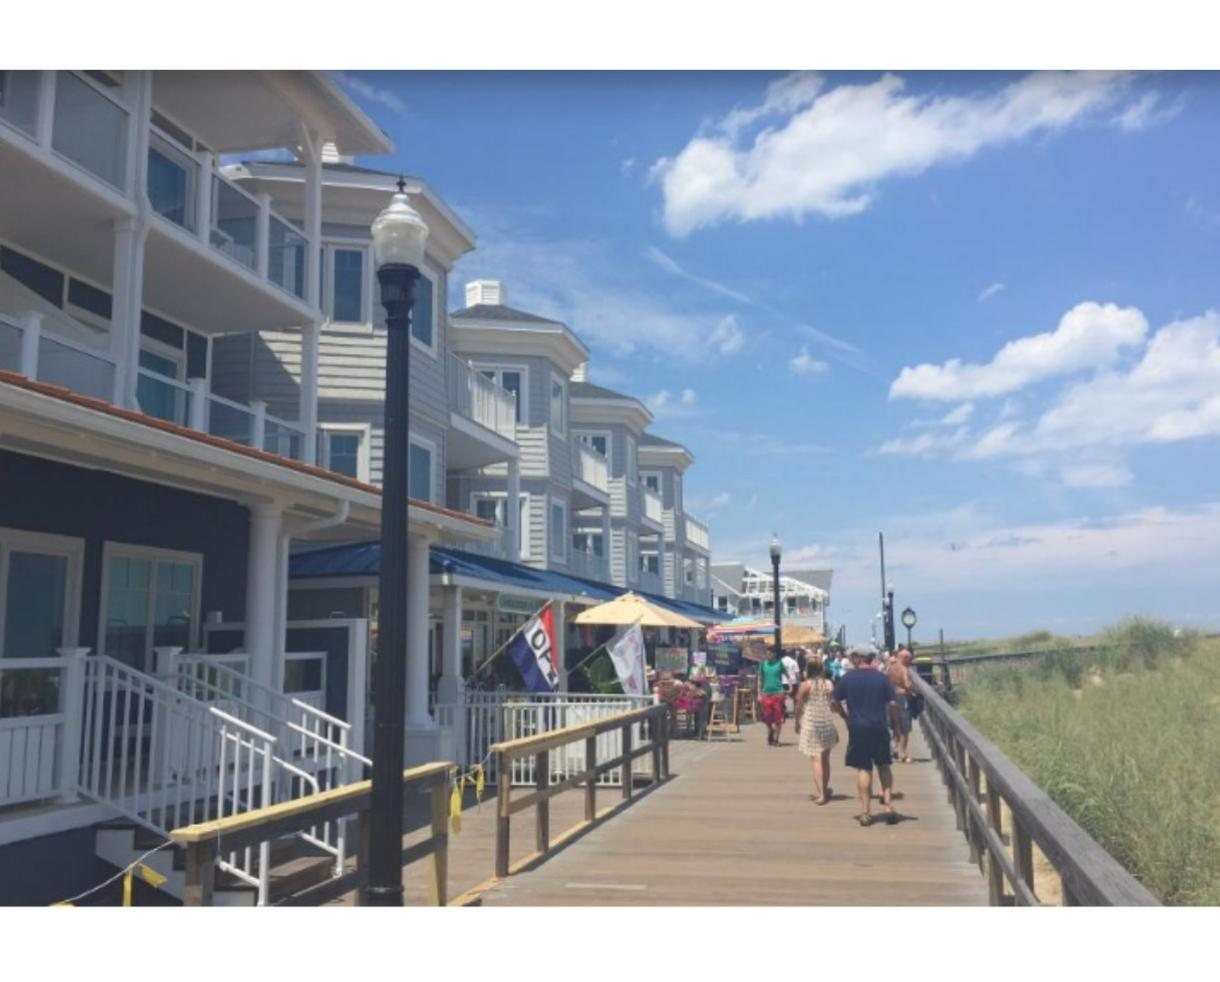 $388 for 2-Night FROZEN Themed Getaway Jan. 19-21 at Bethany Beach Ocean Suites - Includes HOT Breakfast and Activities Each Day PLUS 2 Drinks at 99 Sea Level ($463 Value)